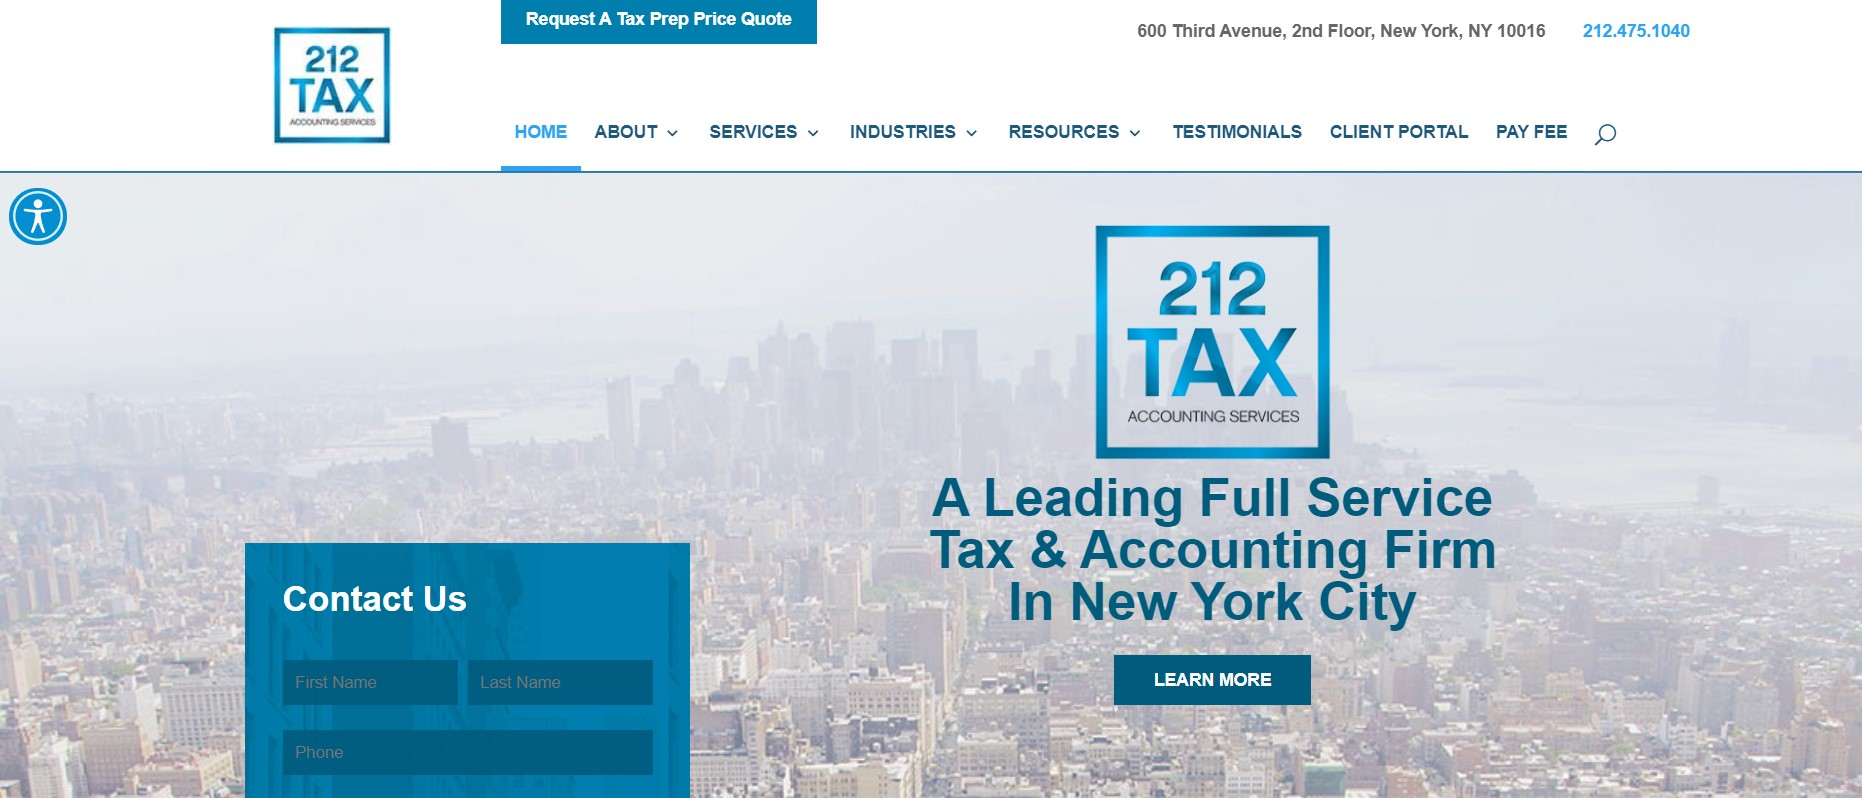 212 tax cpa firm in new york